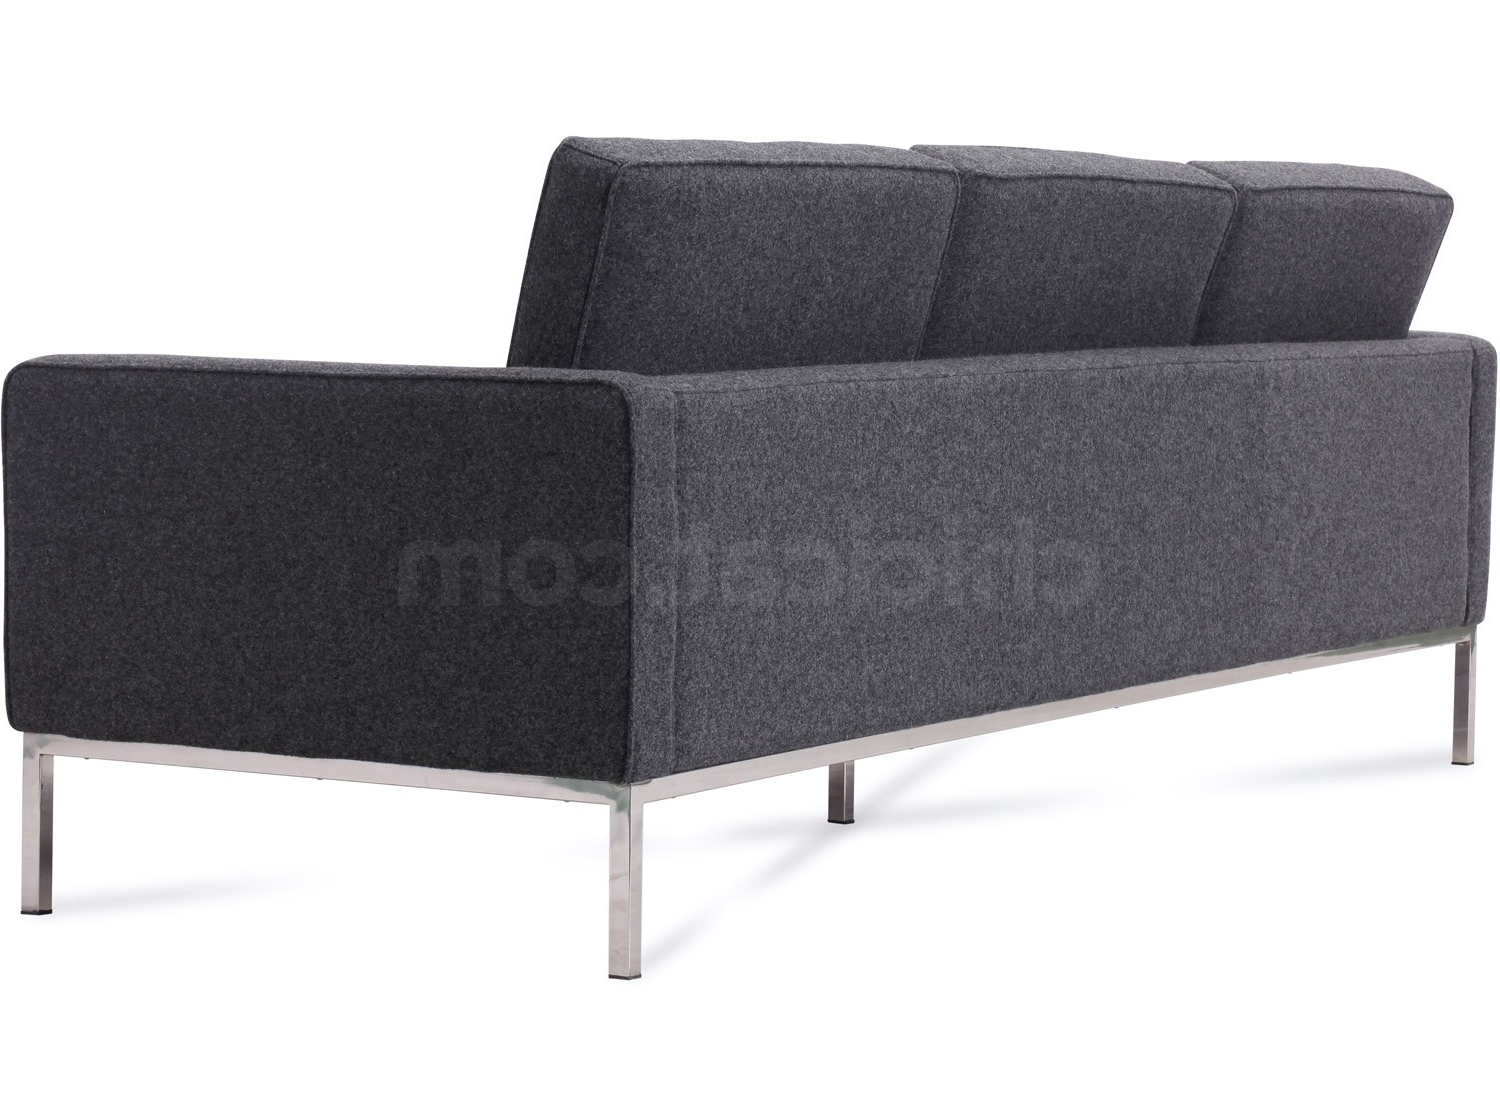 Florence Knoll Sofa 3 Seater Wool (Platinum Replica) With Regard To Best And Newest Florence Knoll 3 Seater Sofas (View 14 of 20)